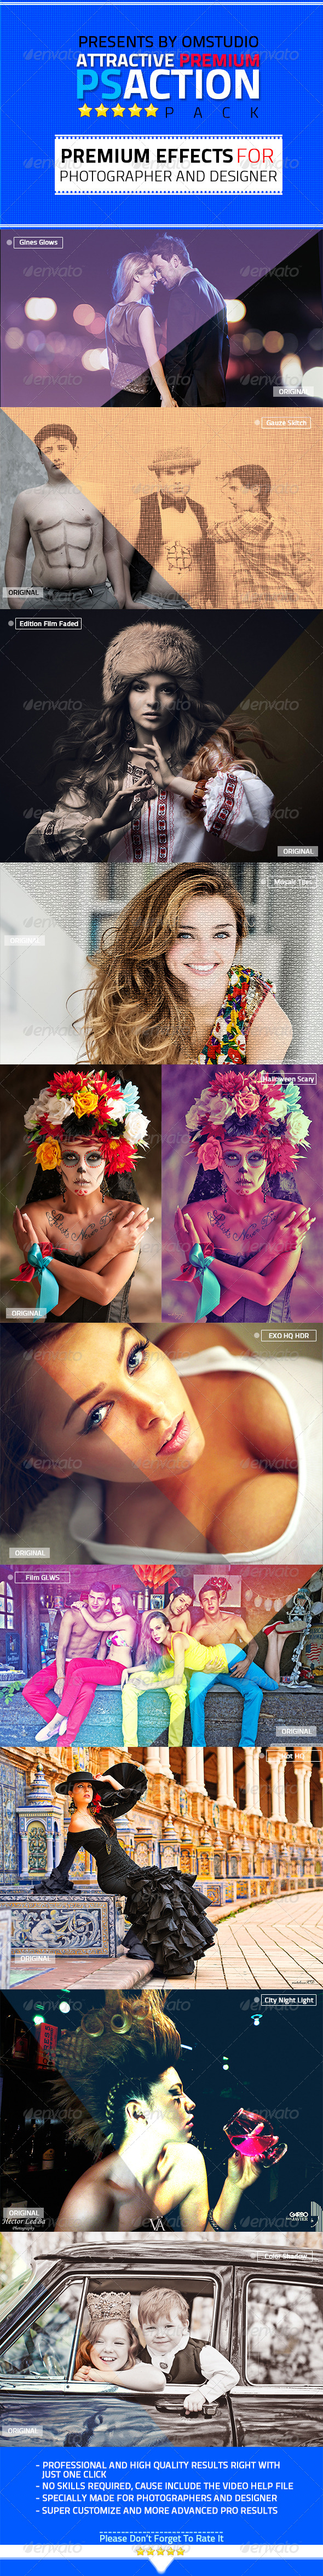 GraphicRiver Attractive Premium Photoshop Action Pack V1 5638175